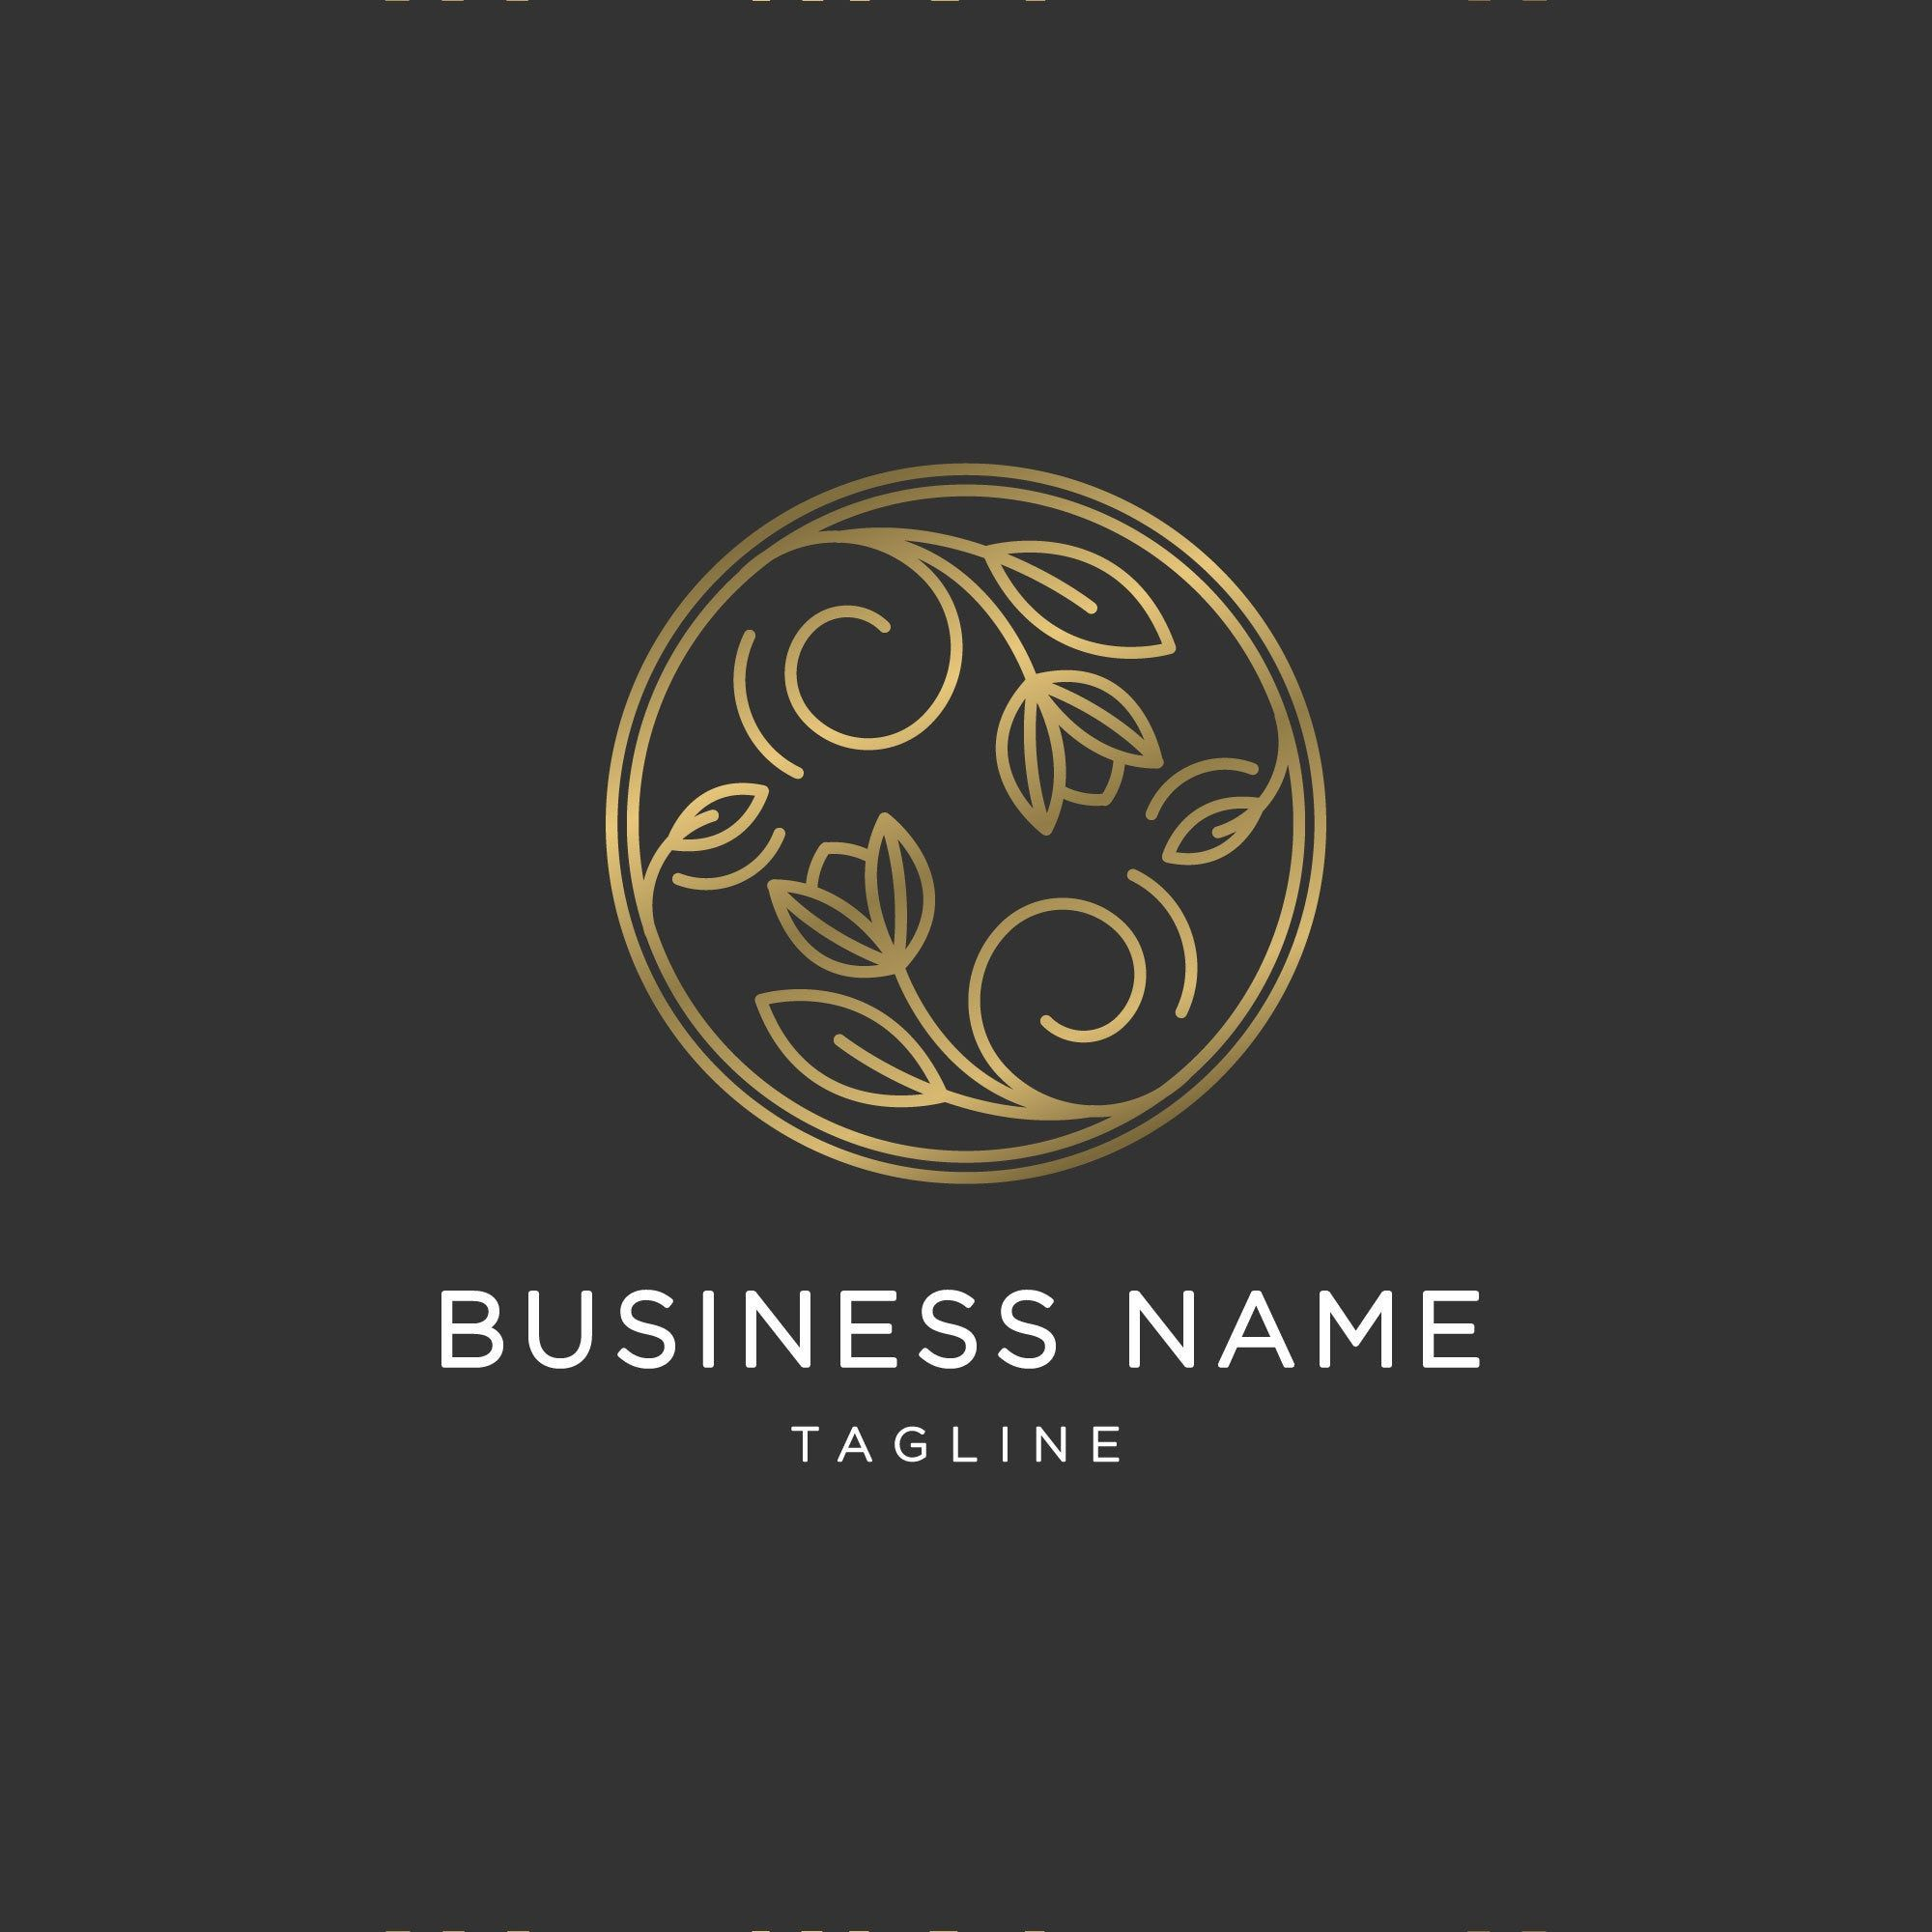 Photo of premade luxury, organic logo for an Organic Shop, cosmetics, Naturopath consultant, handmade jewelry boutique